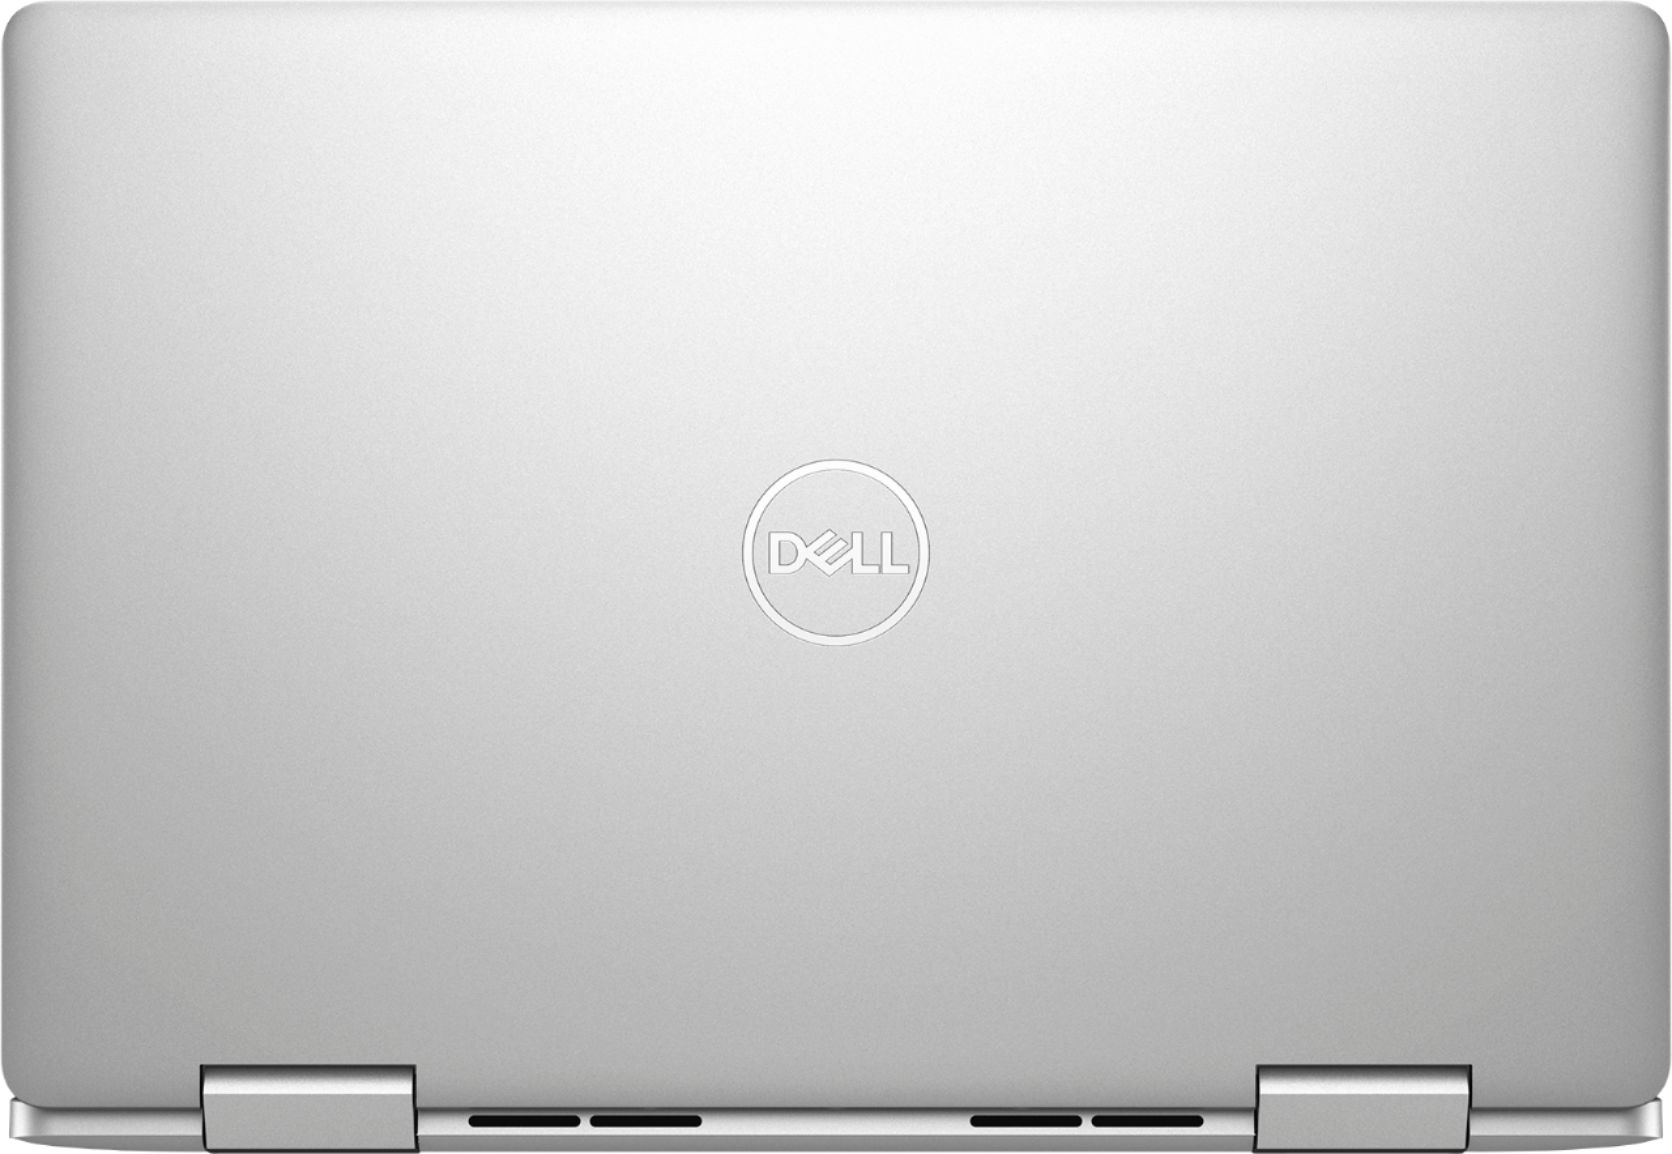 "Alt View Zoom 3. Dell - Inspiron 2-in-1 15.6"" Geek Squad Certified Refurbished Touch-Screen Laptop - Intel Core i5 - 8GB Memory - 256GB SSD - Silver."